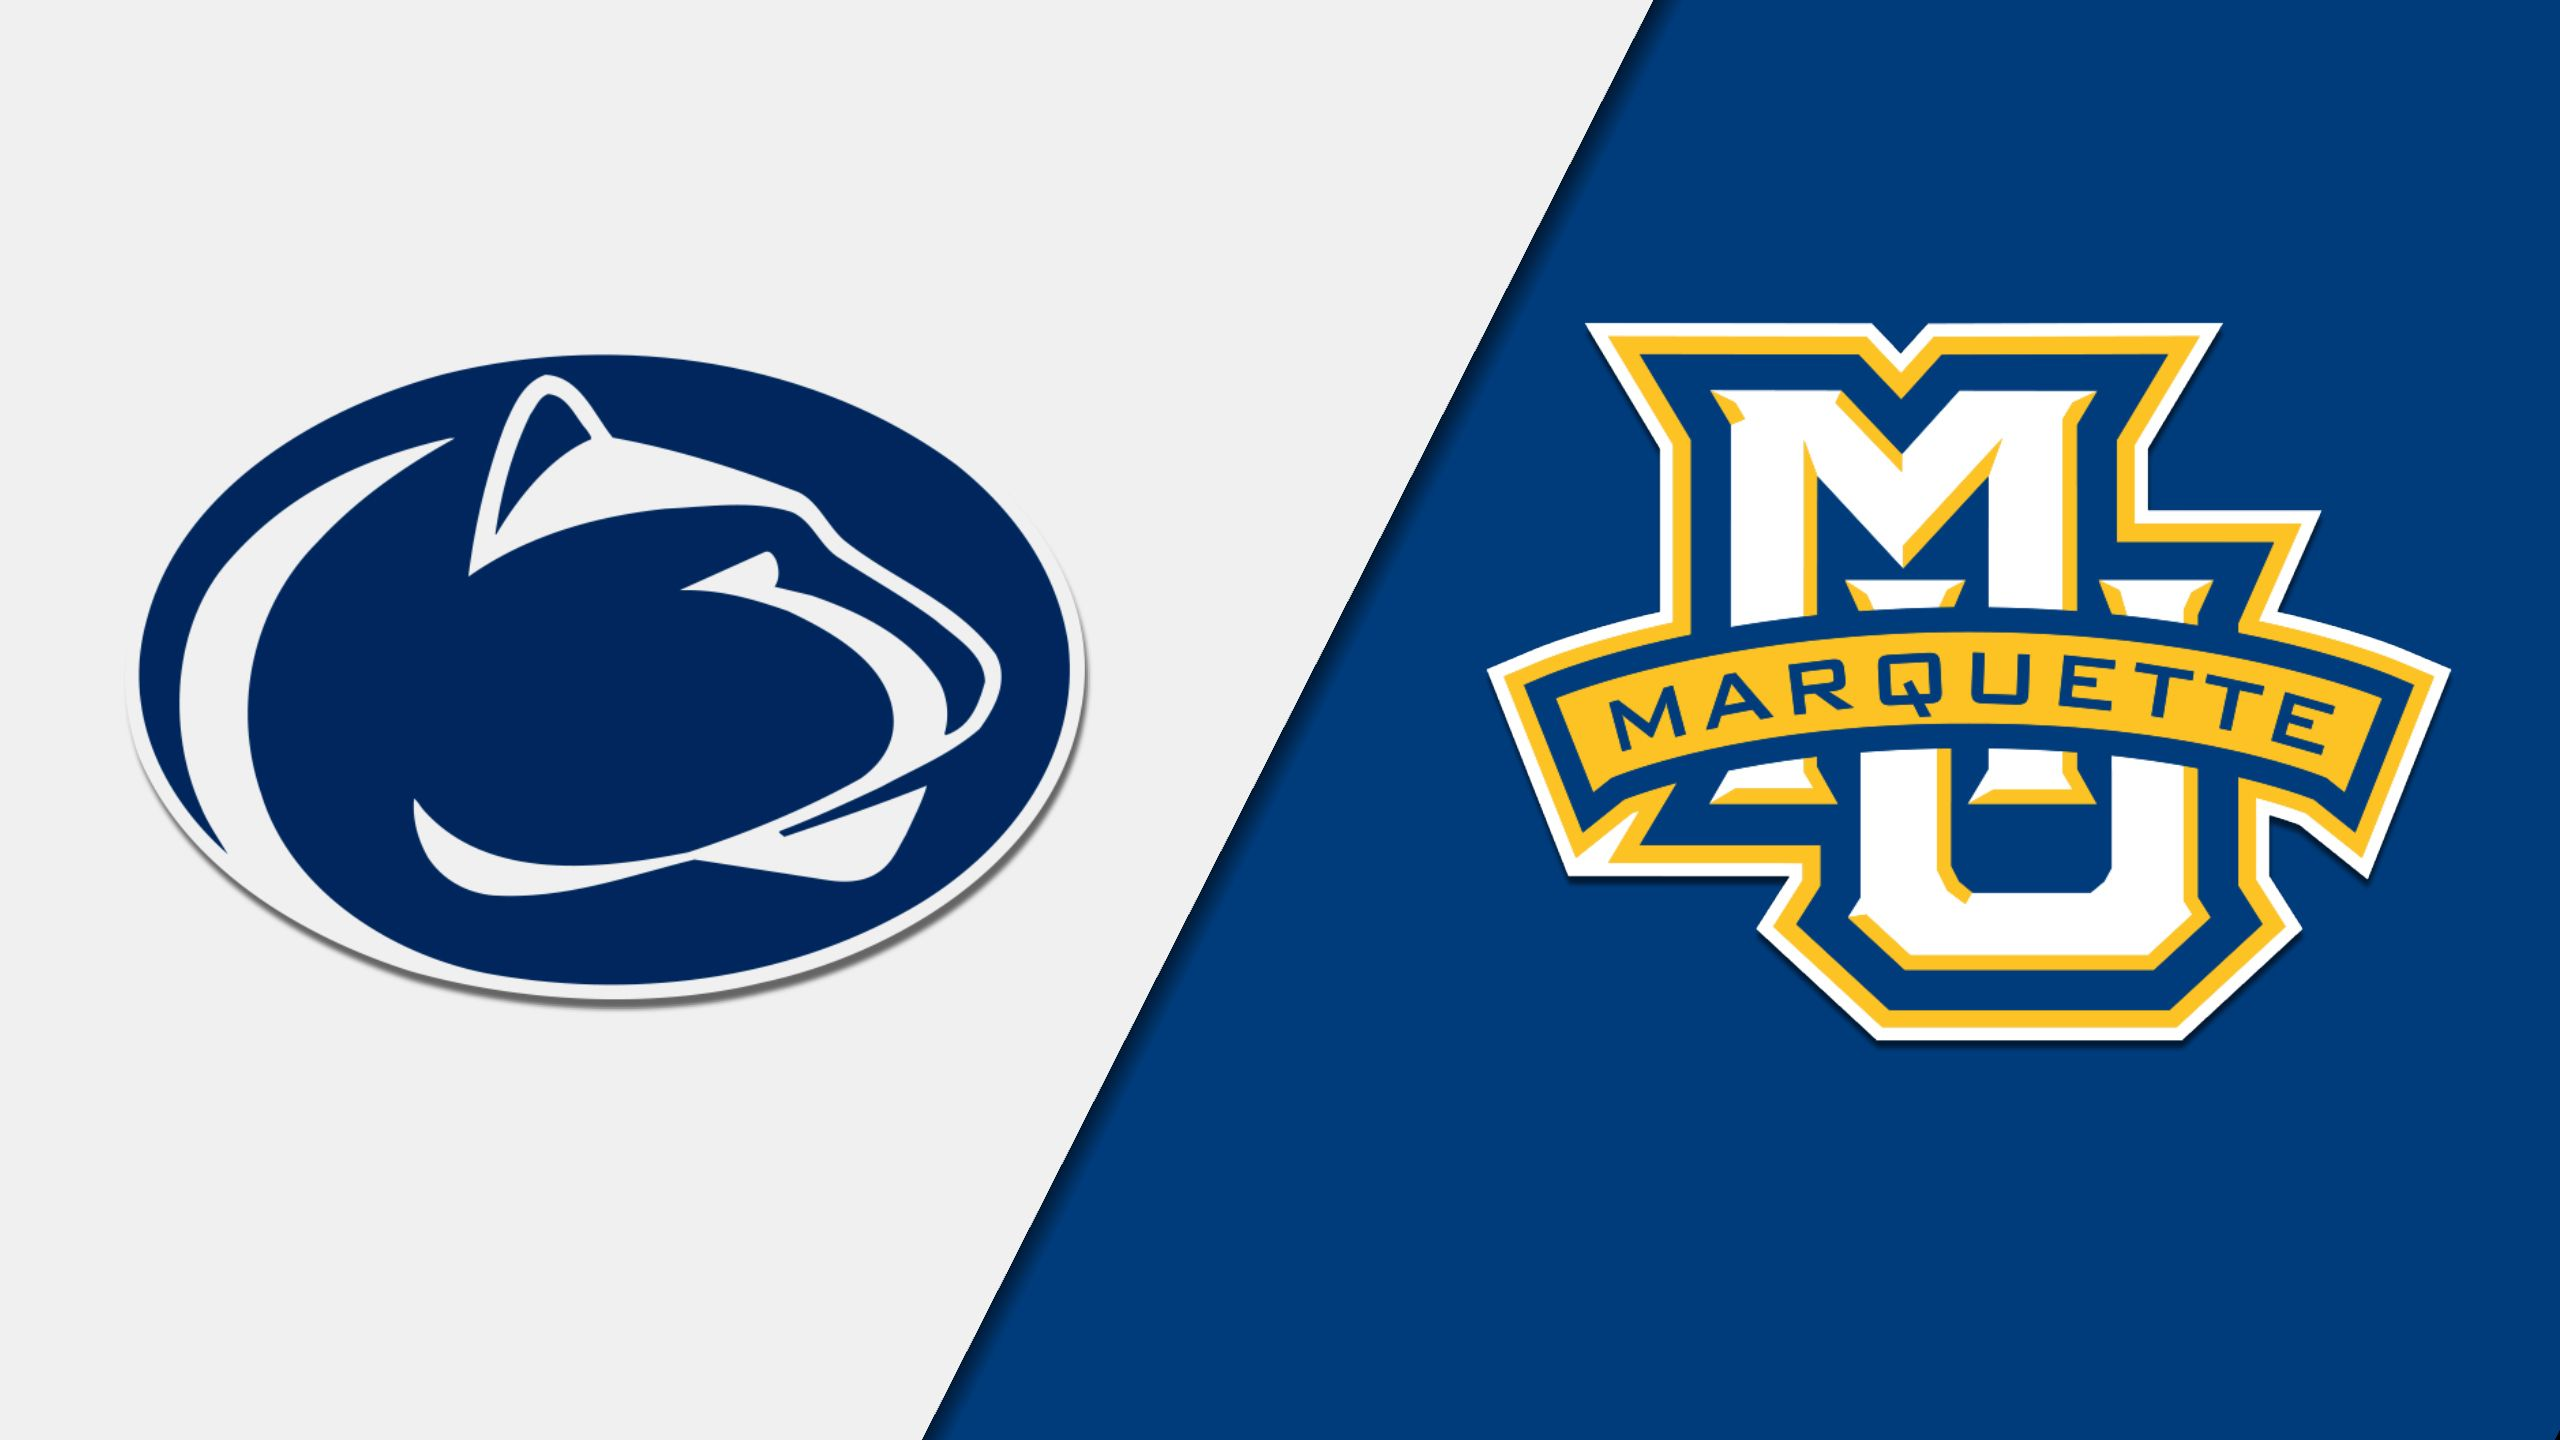 #4 Penn State vs. #2 Marquette (Quarterfinal #1) (re-air)